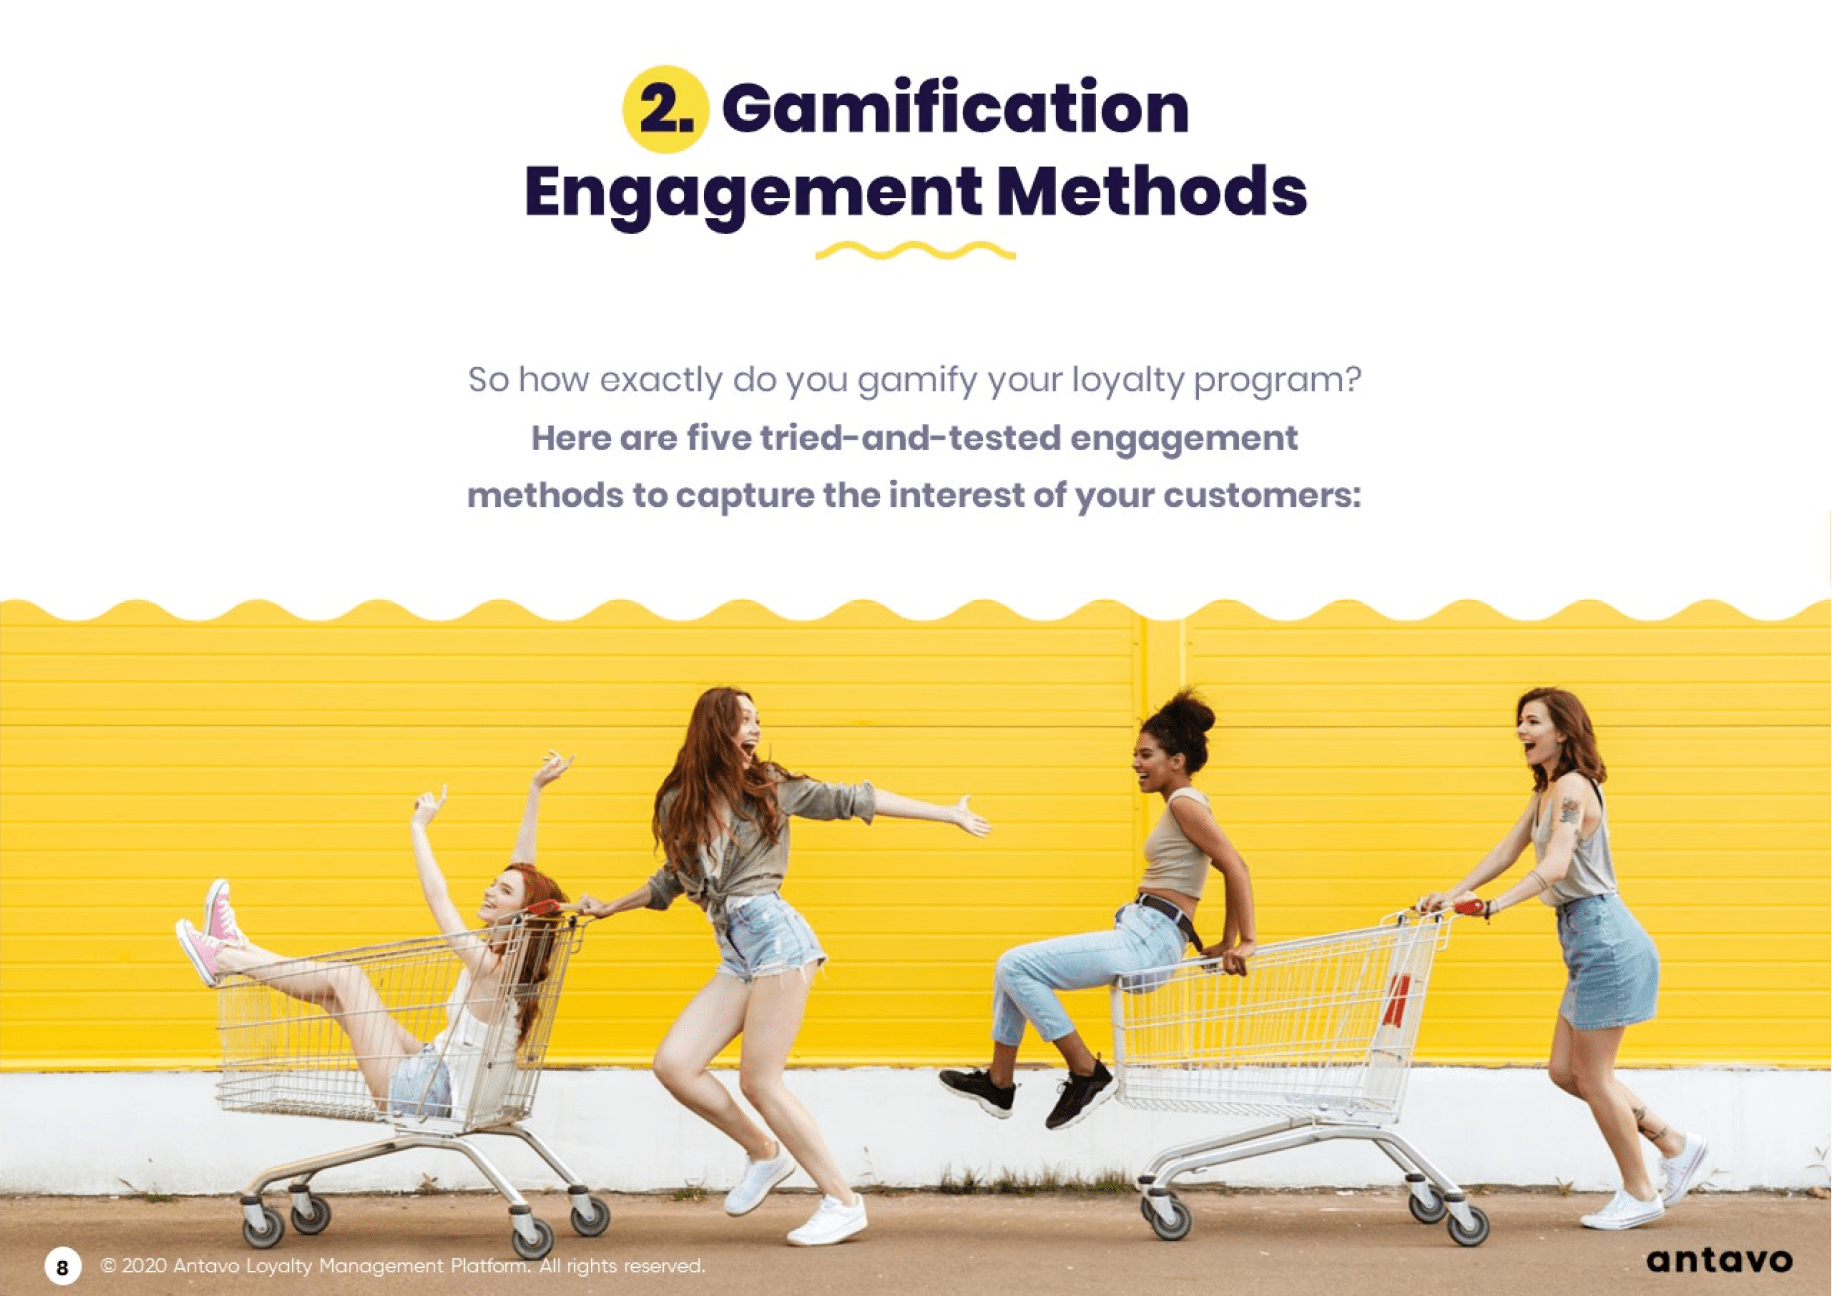 Antavo's Ebook: Best Practices for Gamification in Loyalty Programs - Gamification engagement methods.